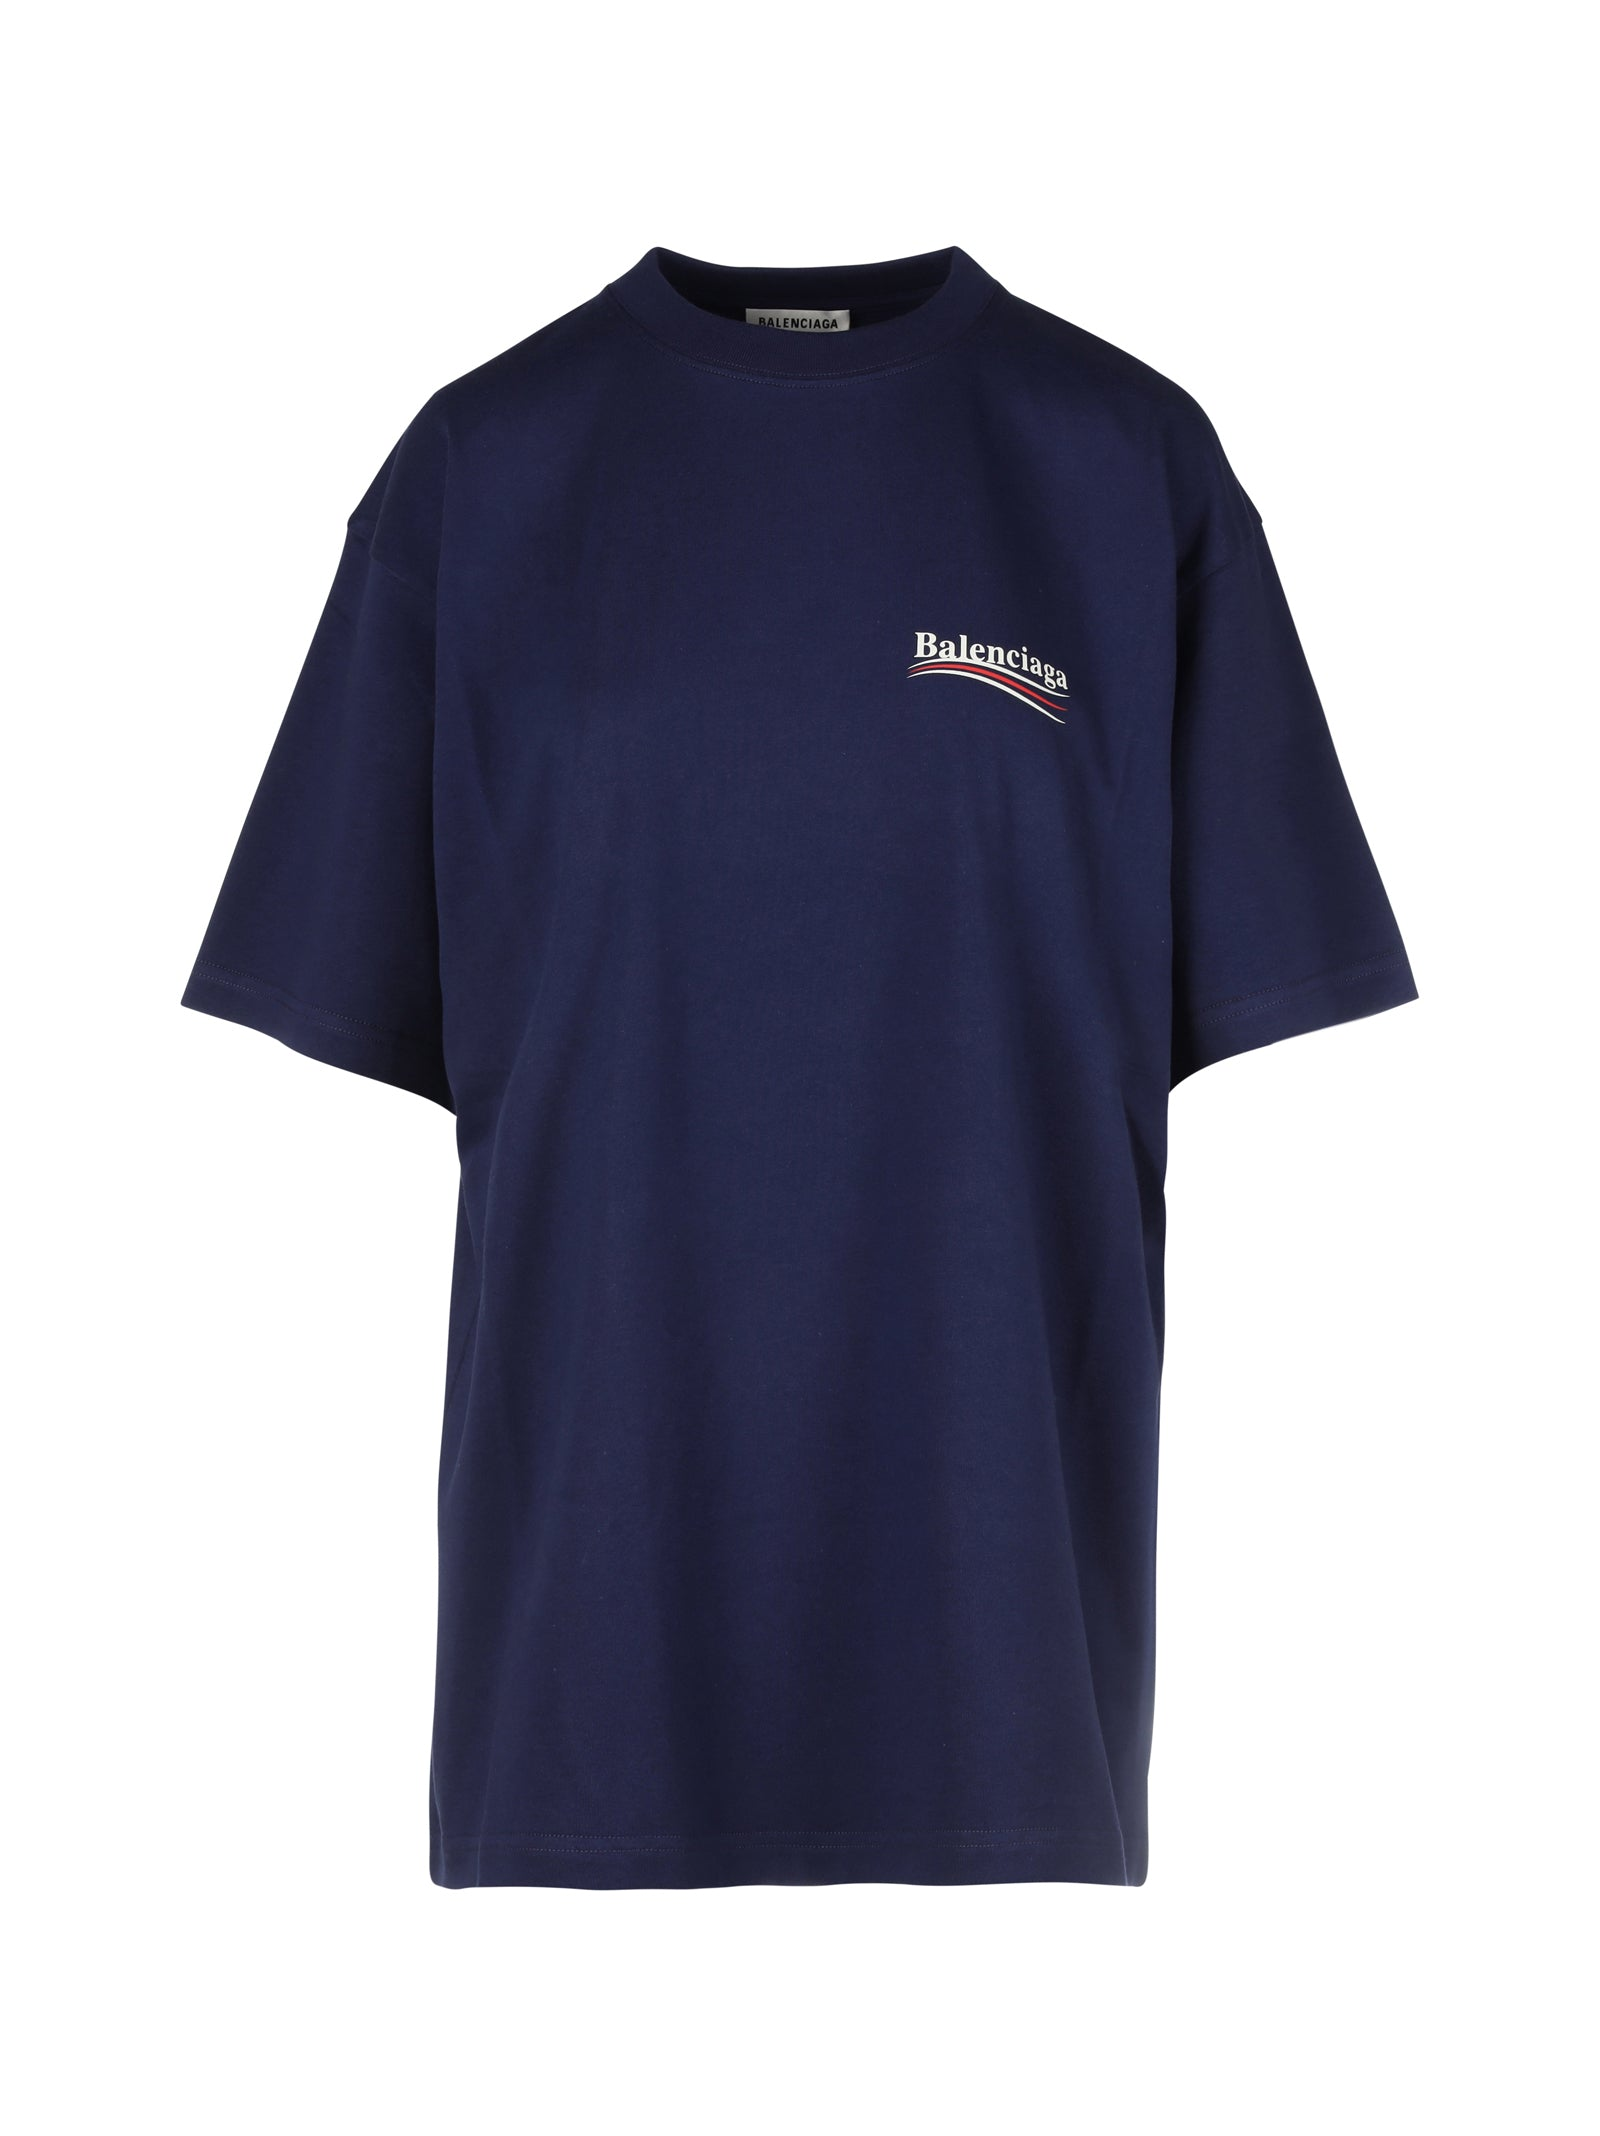 Balenciaga cotton t-shirt with logo